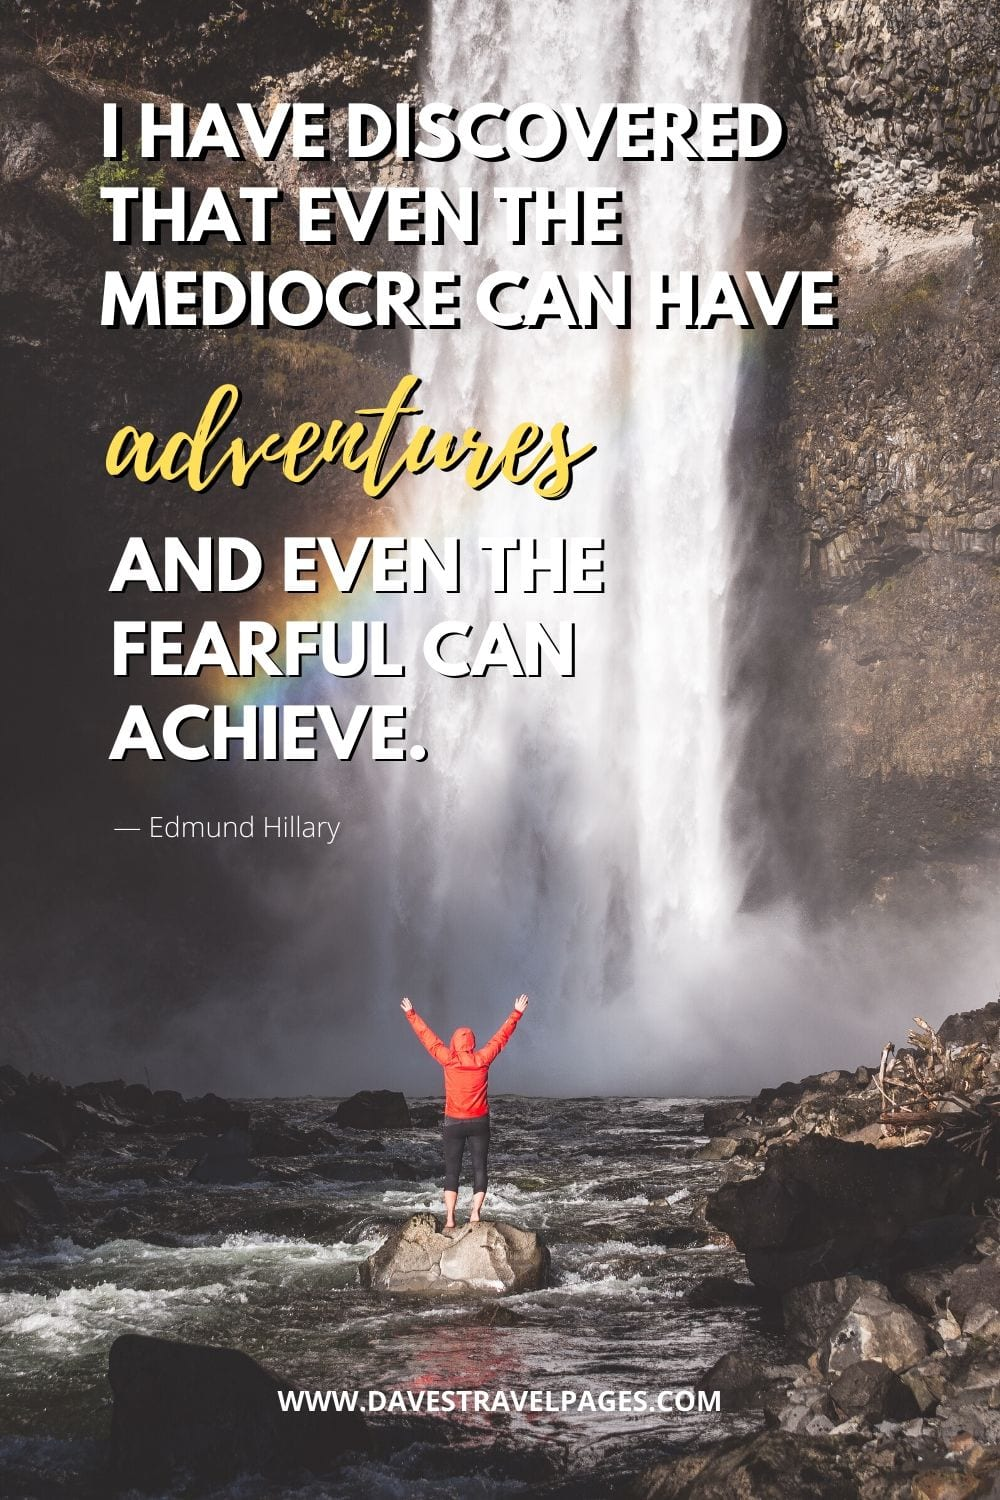 I have discovered that even the mediocre can have adventures and even the fearful can achieve. - Quote about adventure by Edmund Hillary